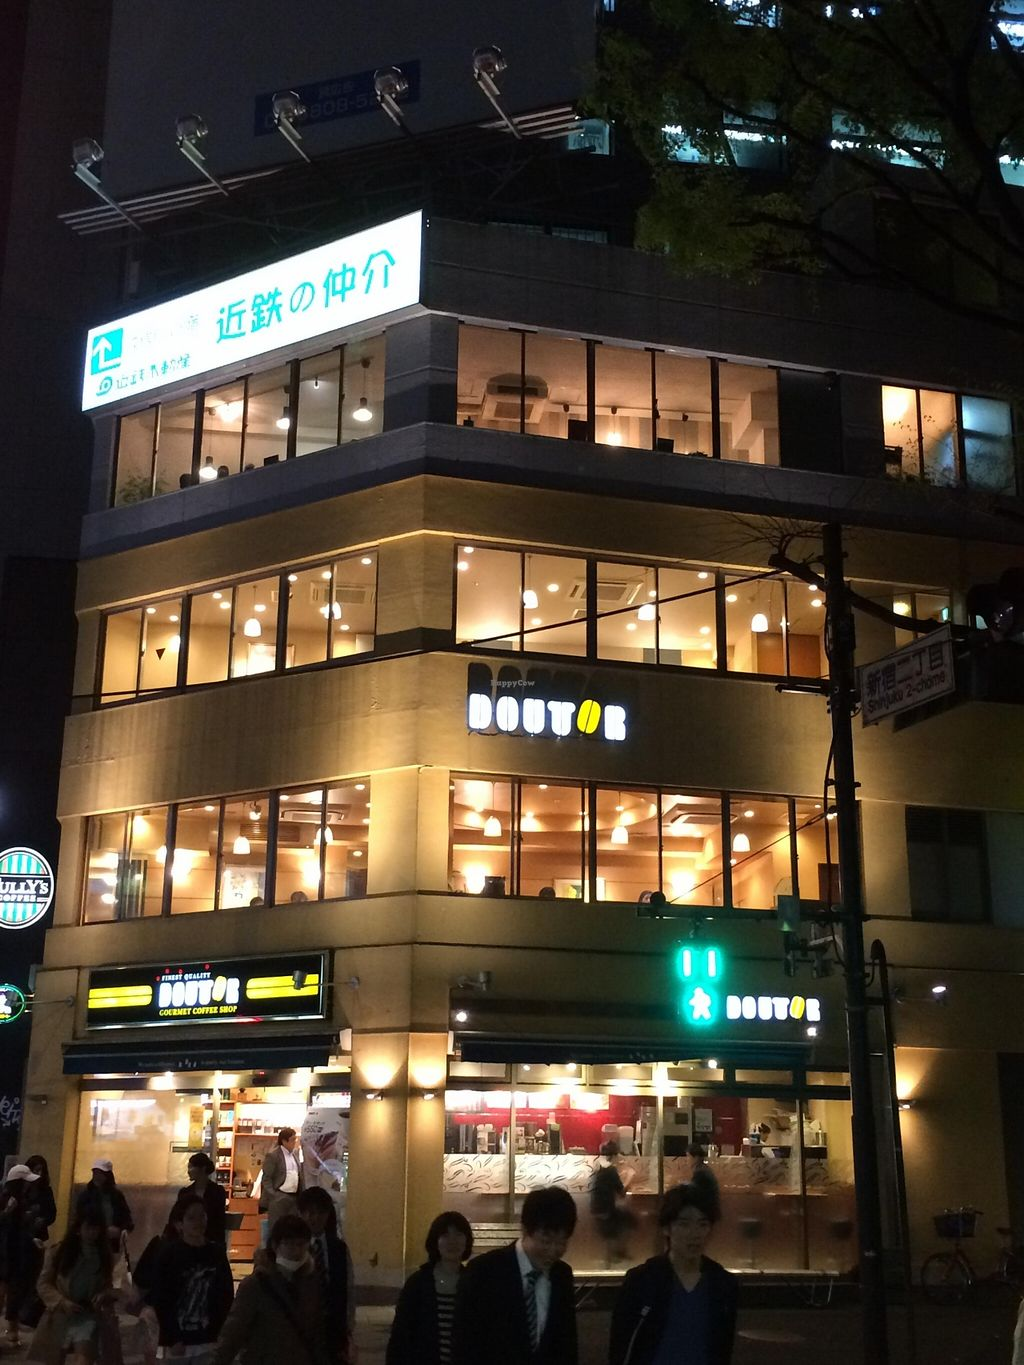 "Photo of Slow Food and Wine KiboKo  by <a href=""/members/profile/TakeshiYamazaki"">TakeshiYamazaki</a> <br/>The appearance of the store. The fourth floor of this building <br/> April 24, 2016  - <a href='/contact/abuse/image/67128/146165'>Report</a>"